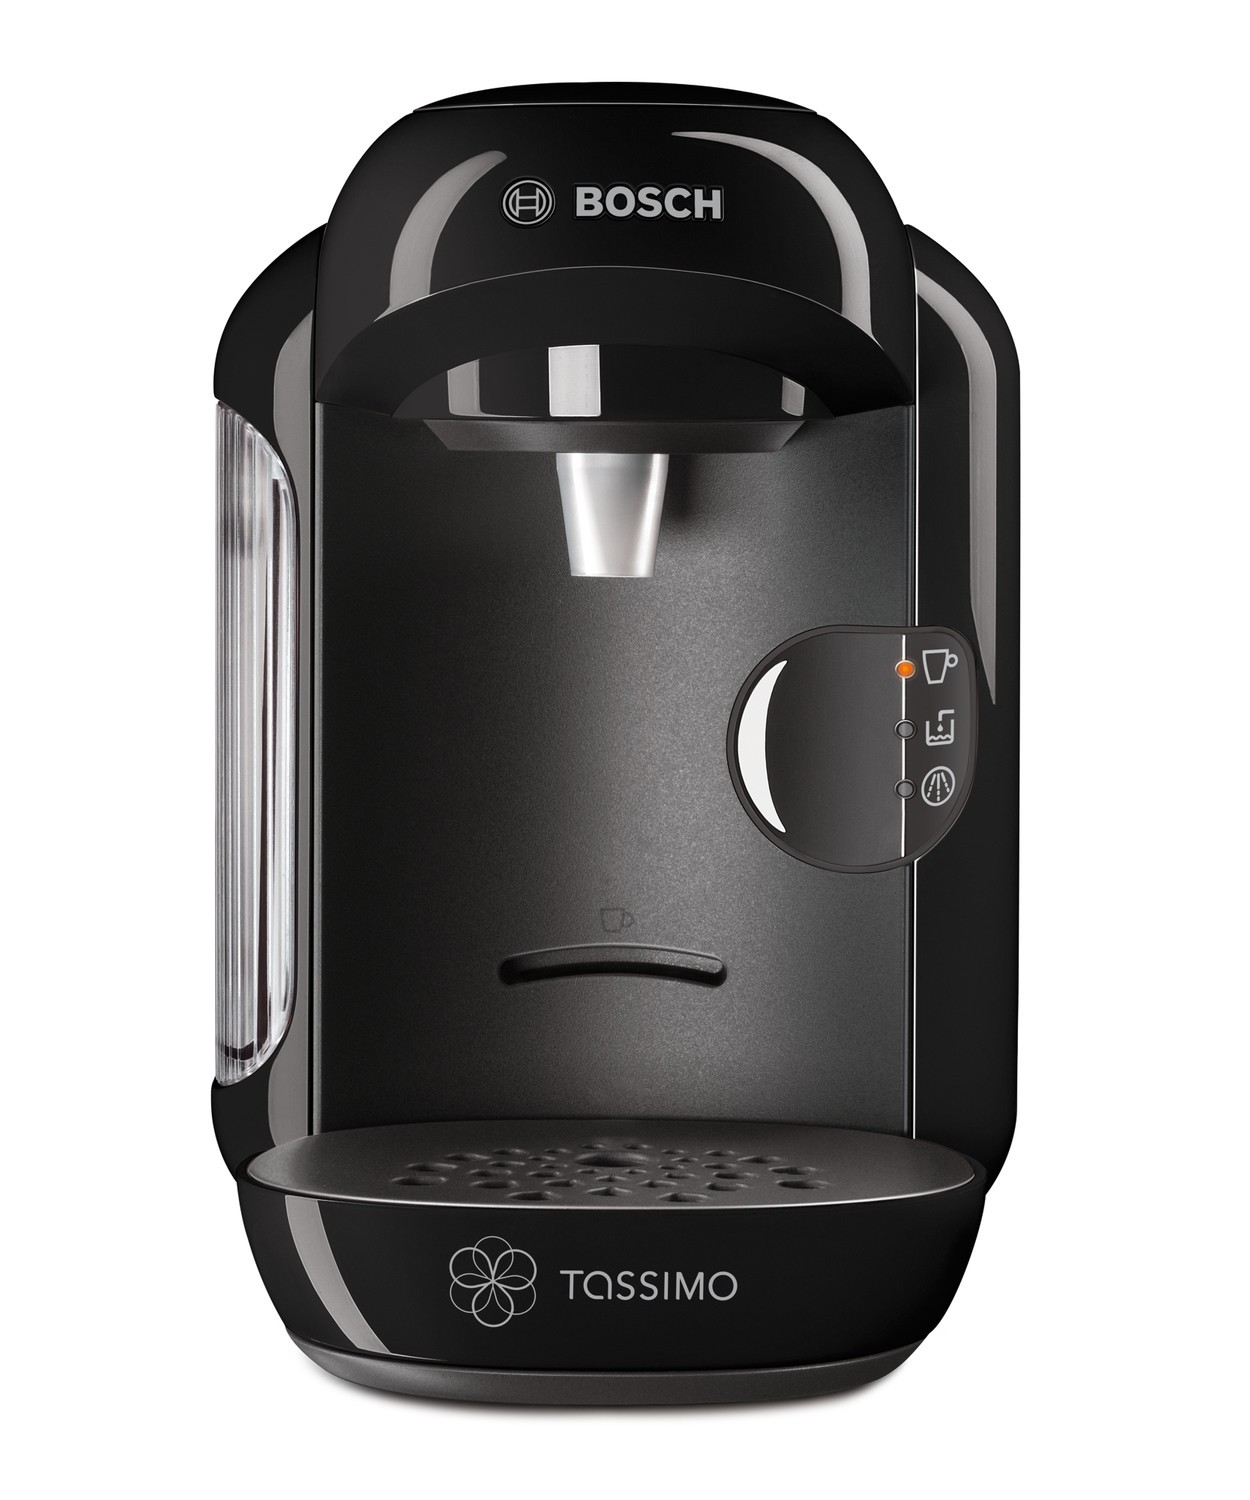 bosch tassimo vivy joyce s home centre new ross. Black Bedroom Furniture Sets. Home Design Ideas